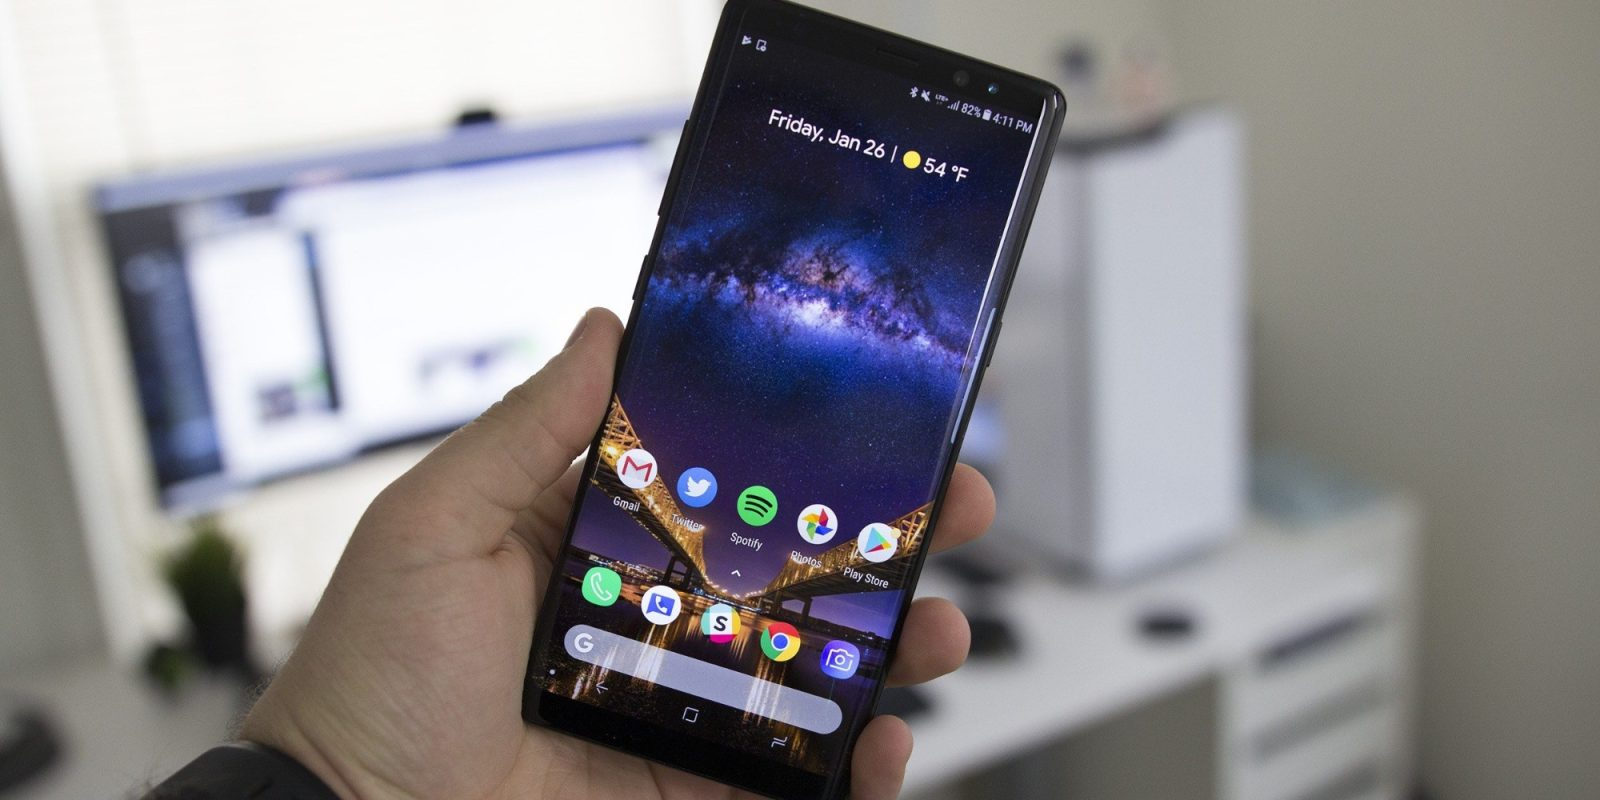 Amazon clears out Samsung Galaxy Note 8, on sale for $470.50 (Reg. $900)